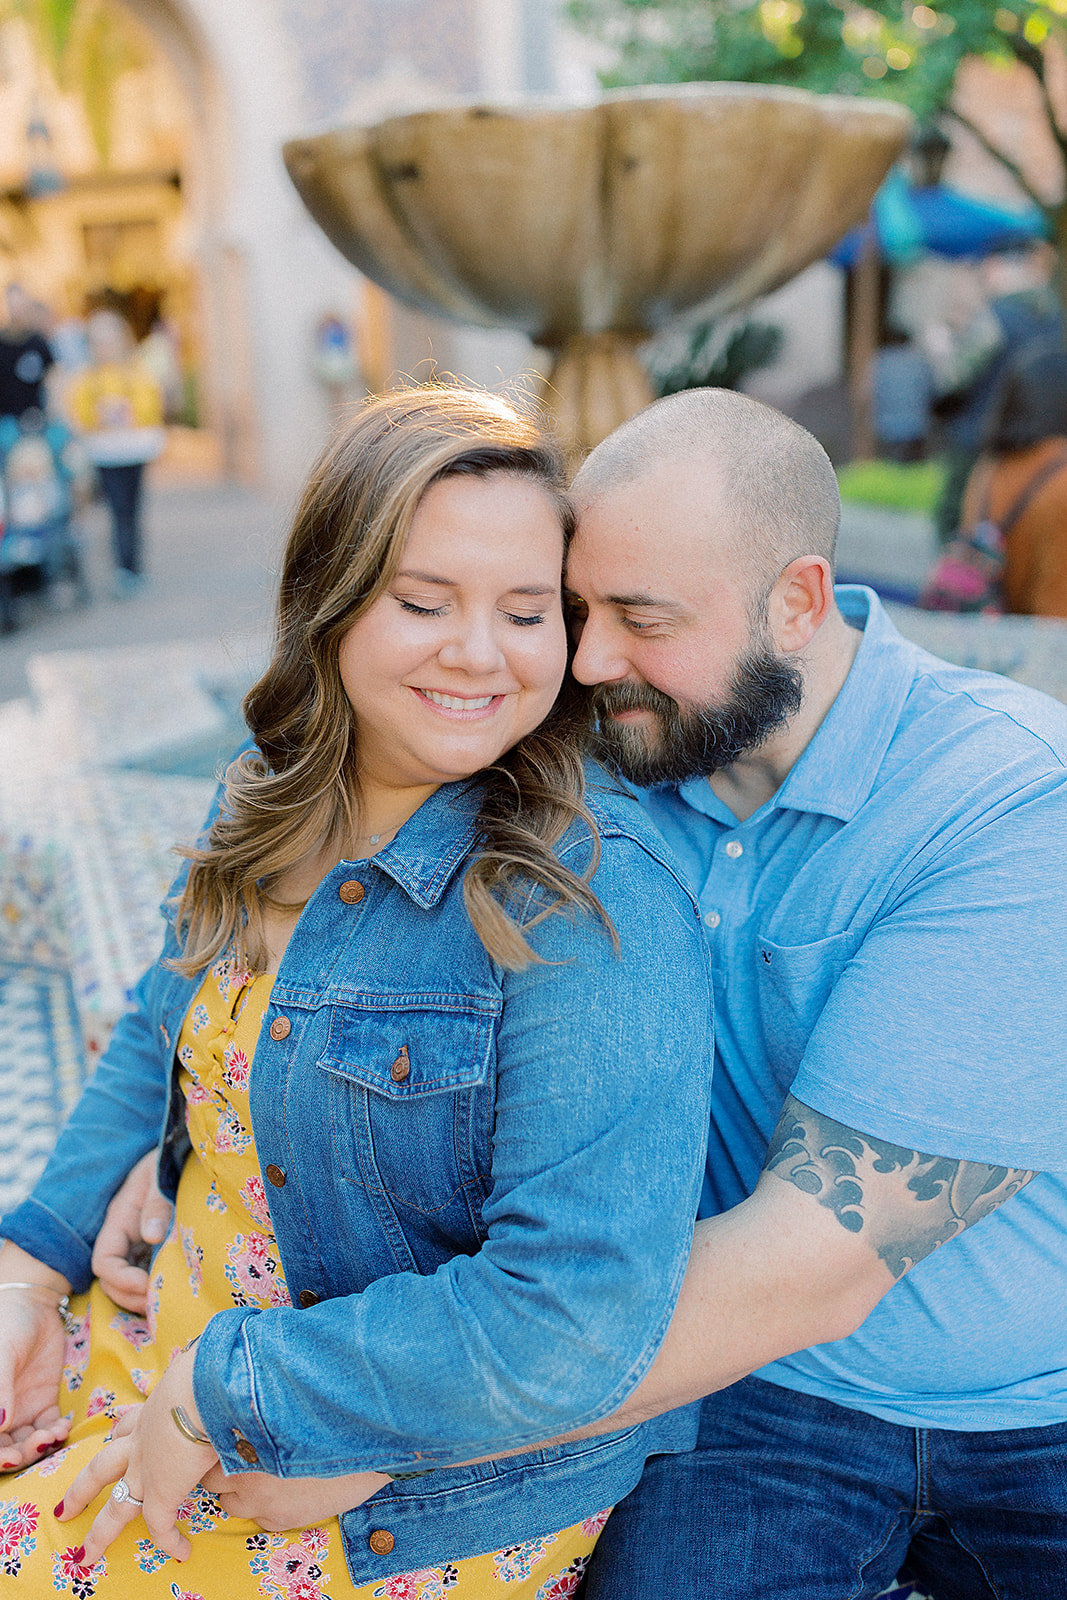 Larisa_+_Craig_Disney_Epcot_Boardwalk_Resort_Engagement_Session_Photographer_Casie_Marie_Photography-40